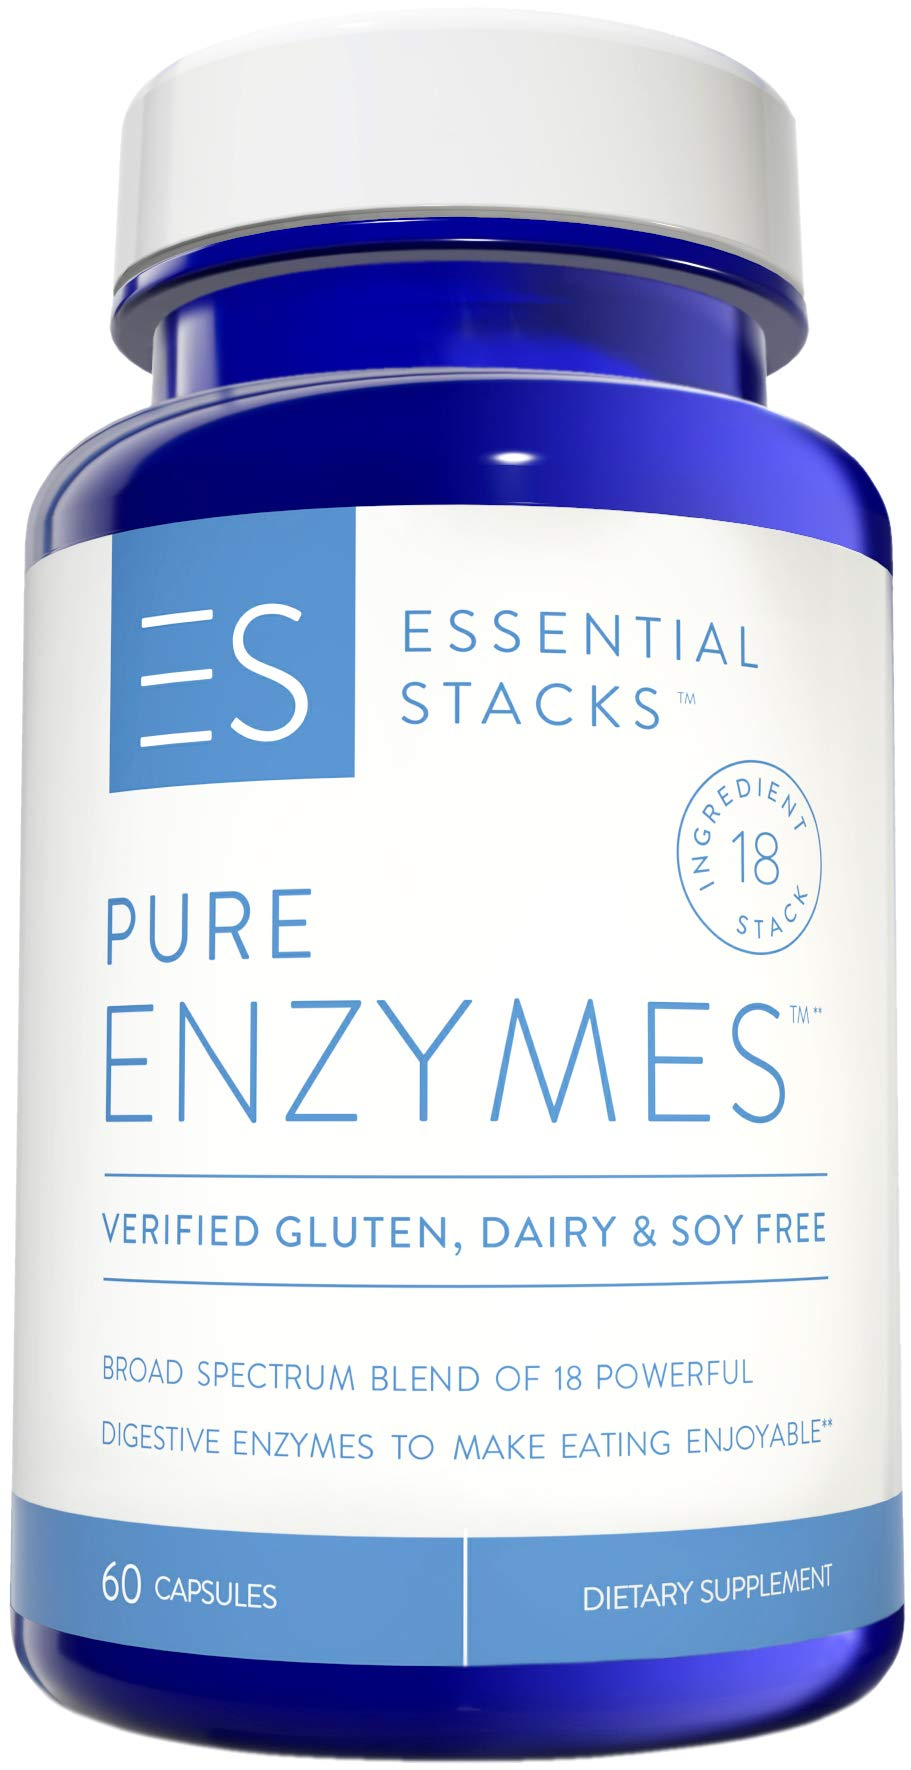 Essential Stacks Pure Digestive Enzymes - Gluten Free, Dairy Free & Soy Free with 3rd Party Verified Allergen Testing - Smart Blend of 18 Powerful Digestive Enzymes So You Can Digest All Food Groups by Essential Stacks